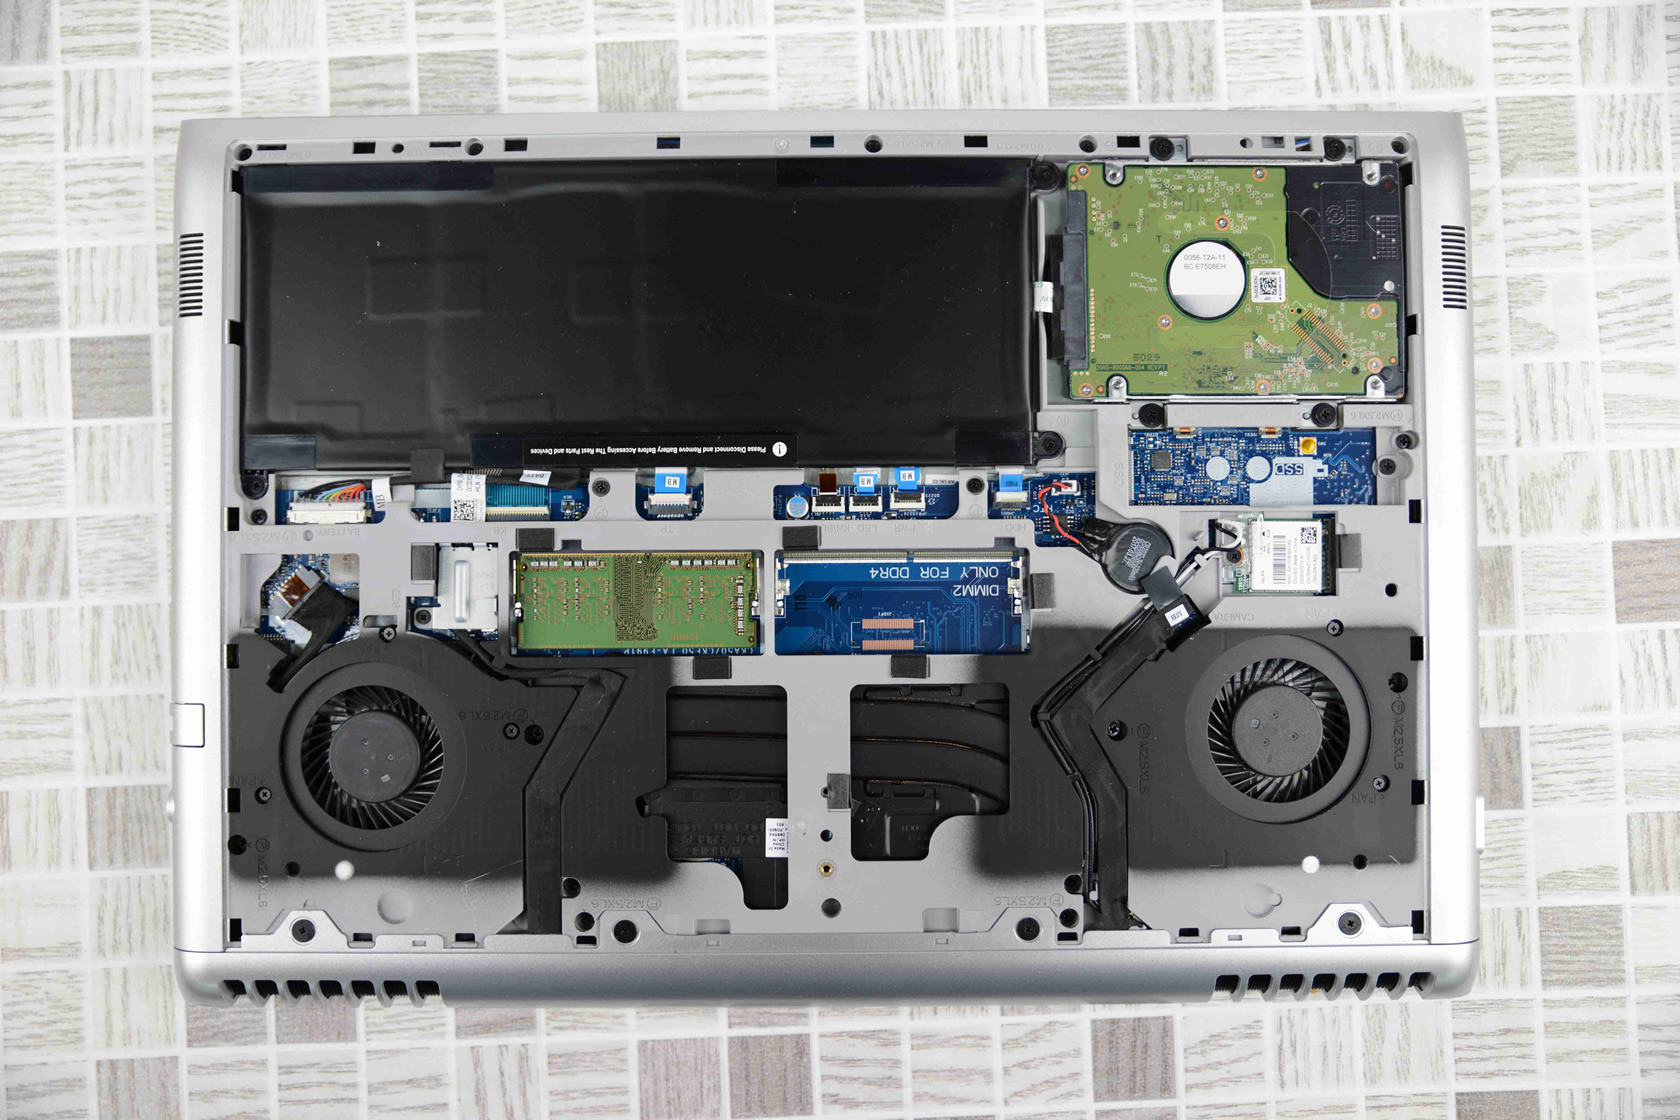 Dell Vostro 15 7570 Disassembly And RAM SSD HDD Upgrade Options